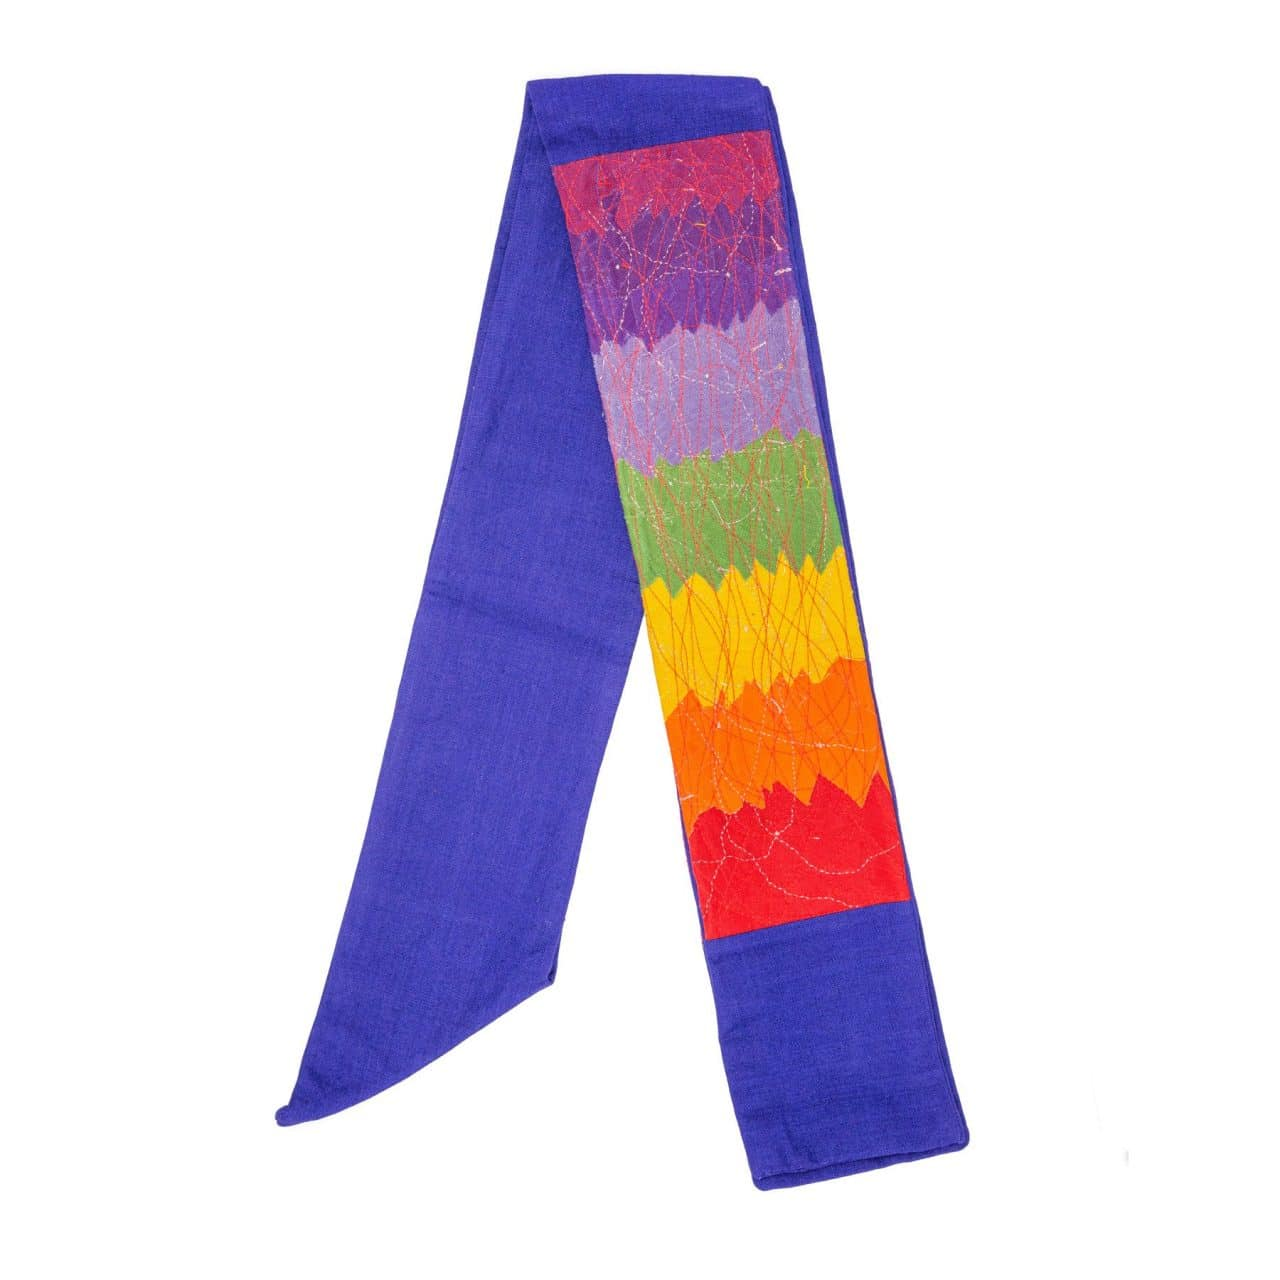 Contemporary Clerical Stole - Rainbow and Blue